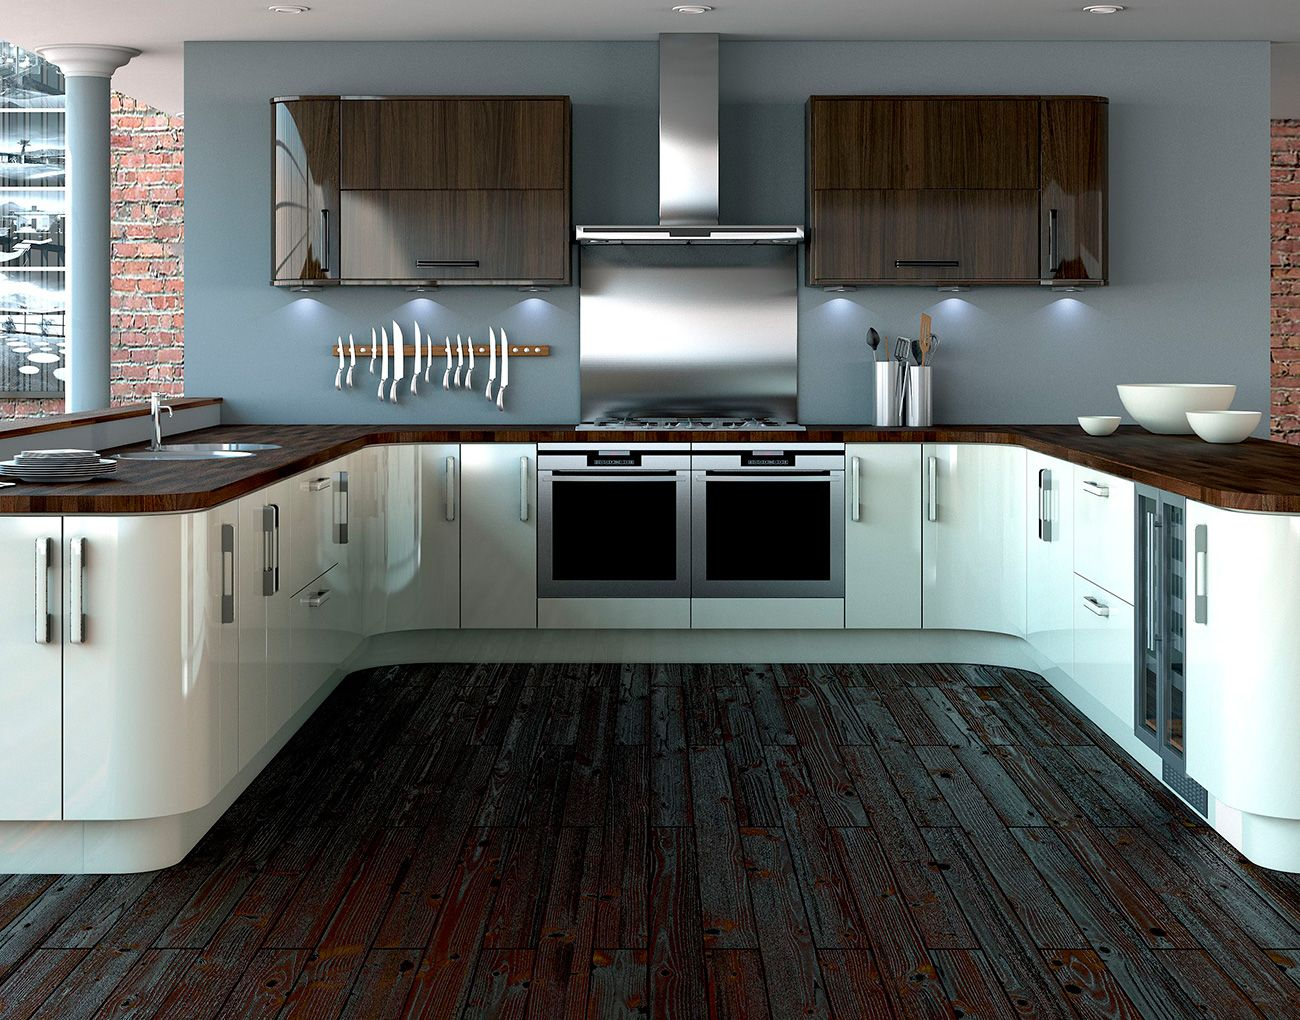 Exceptional Pin By Richard Brewster On Kitchen Pinterest Kitchens And House